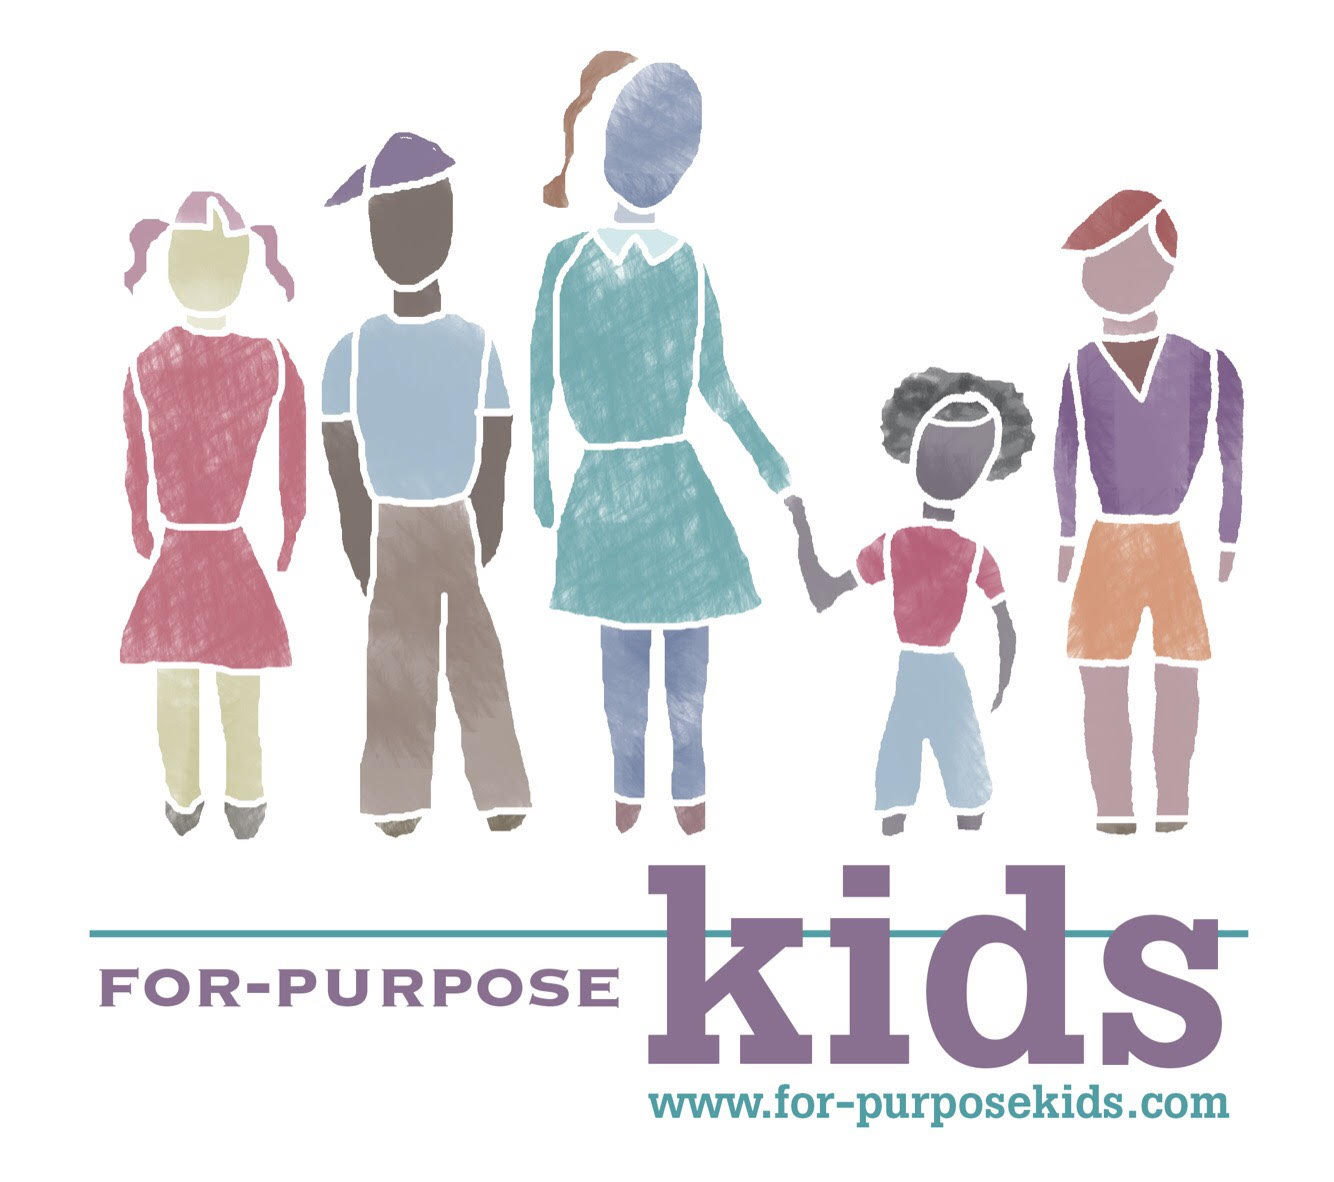 For-Purpose Kids - Click through for discount!